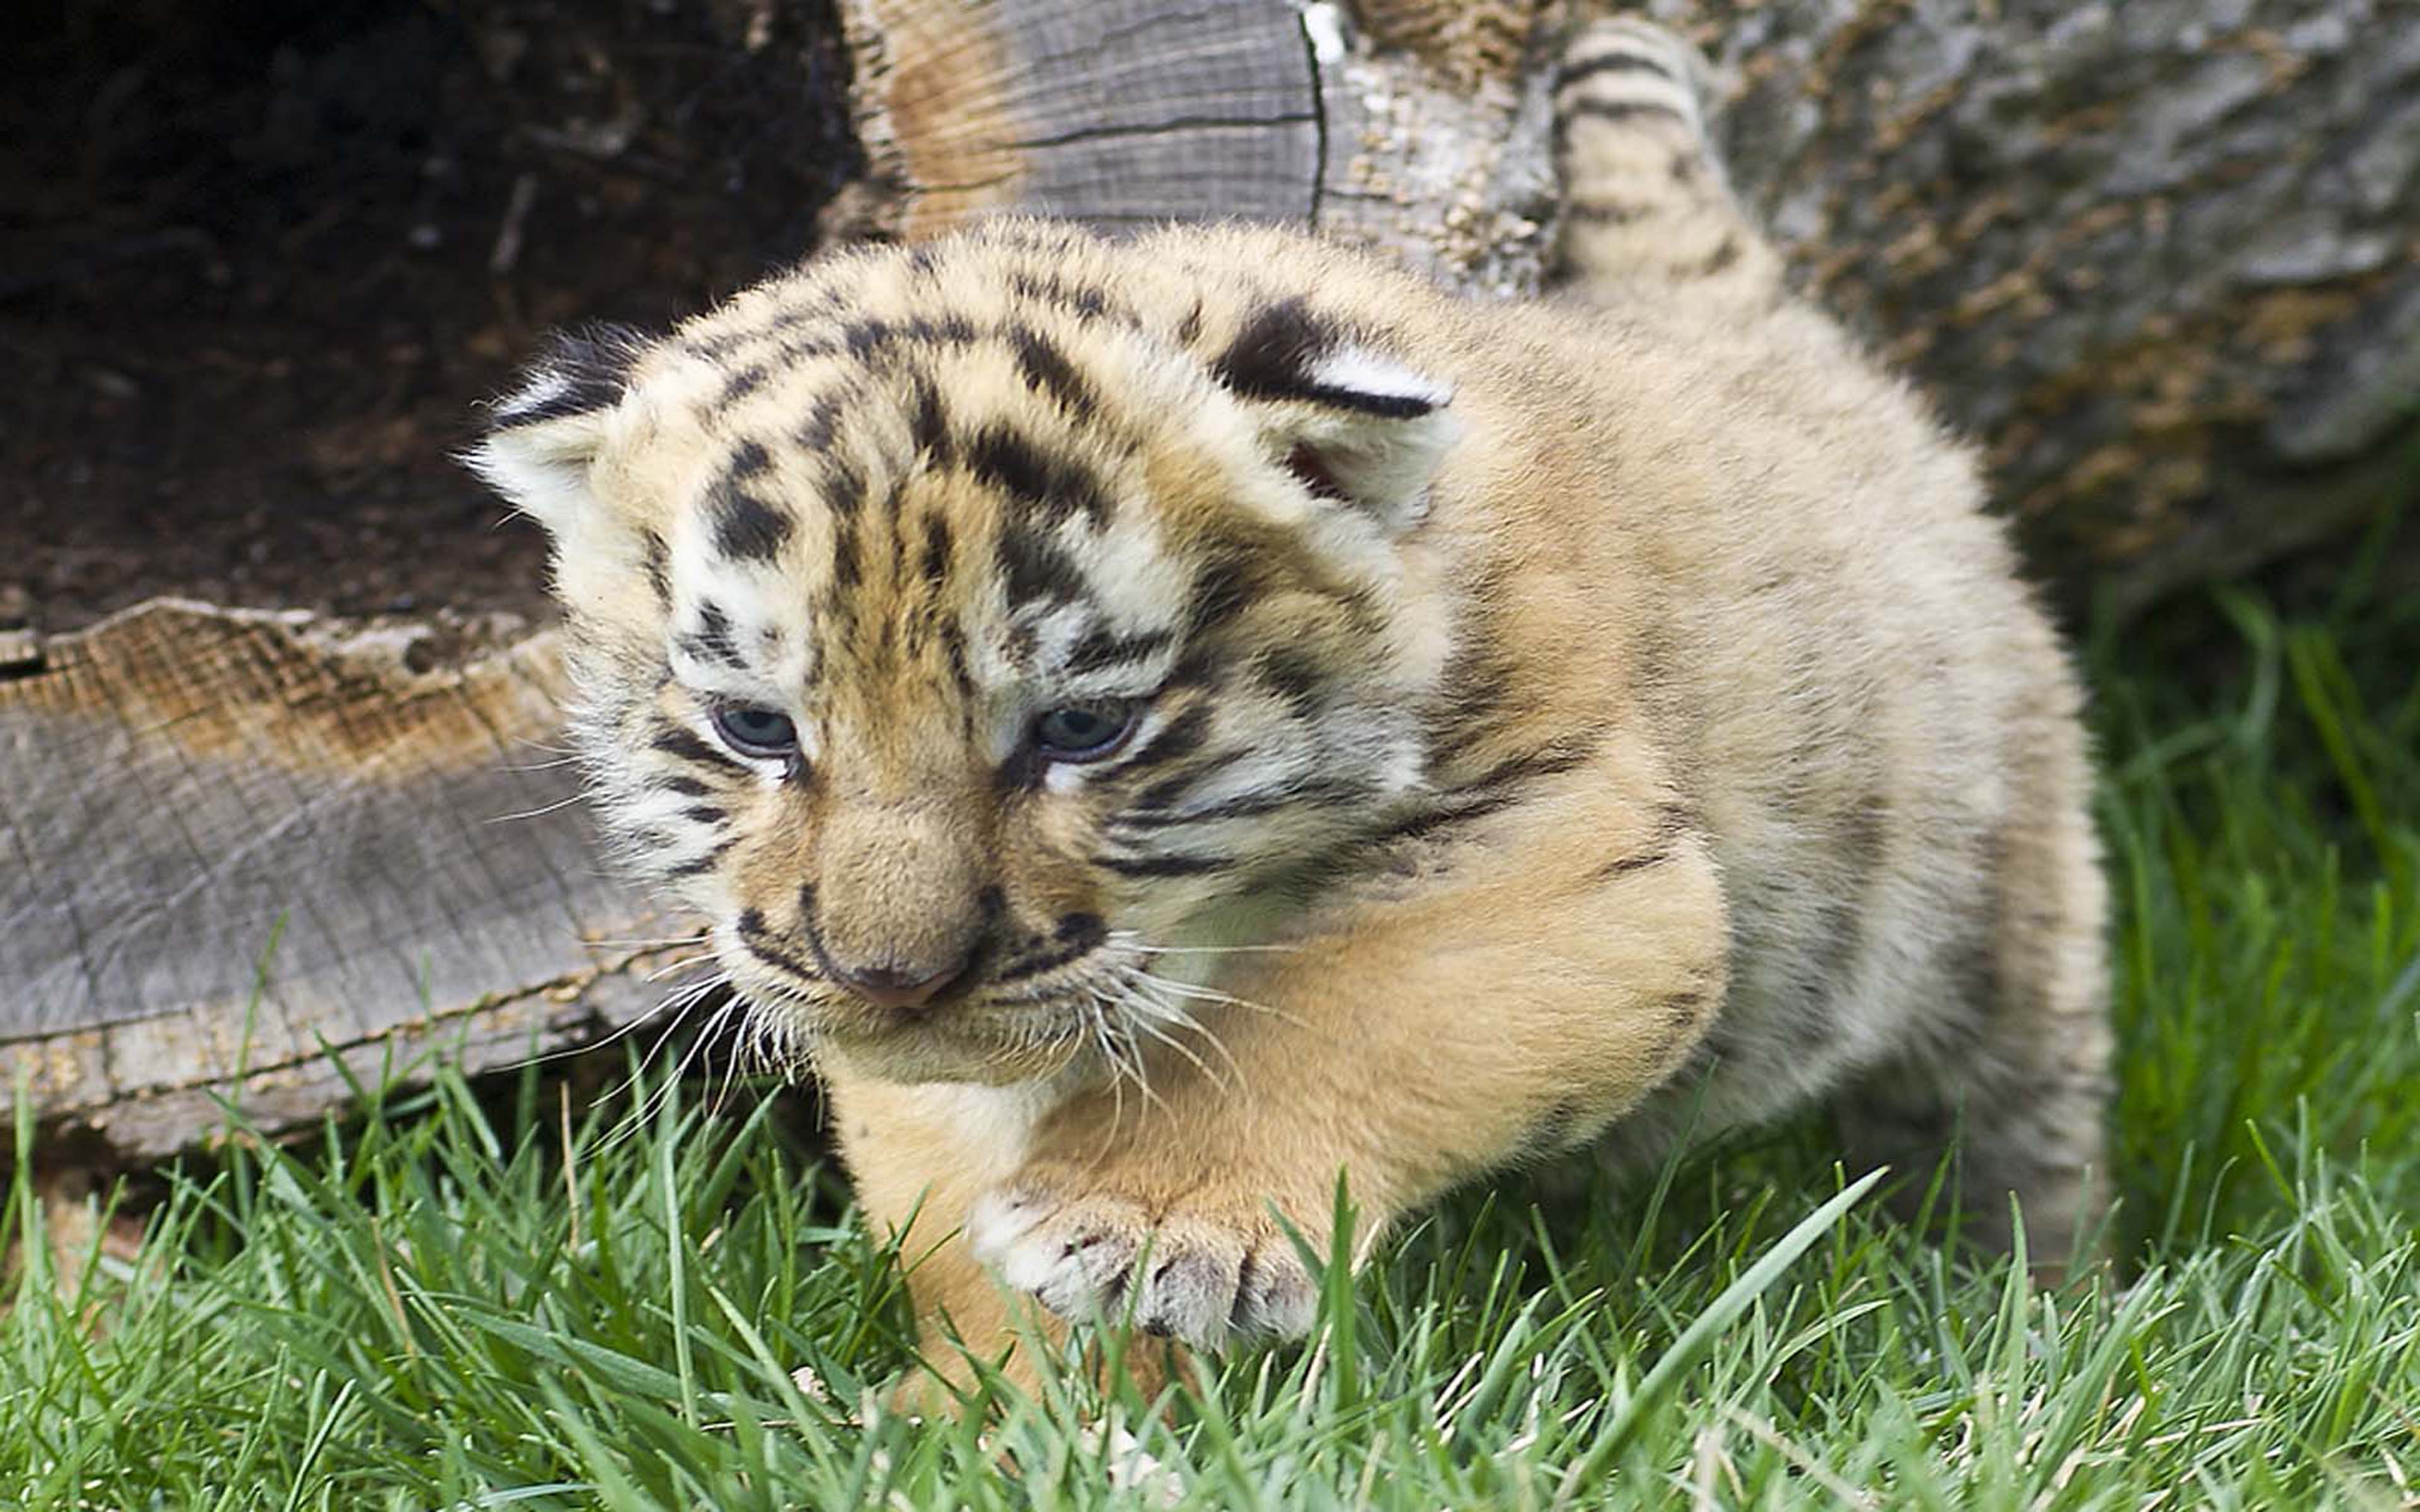 Cute Wallpapers White Background Iages Cute Tiger Cubs Wallpapers Hd Wallpapers13 Com